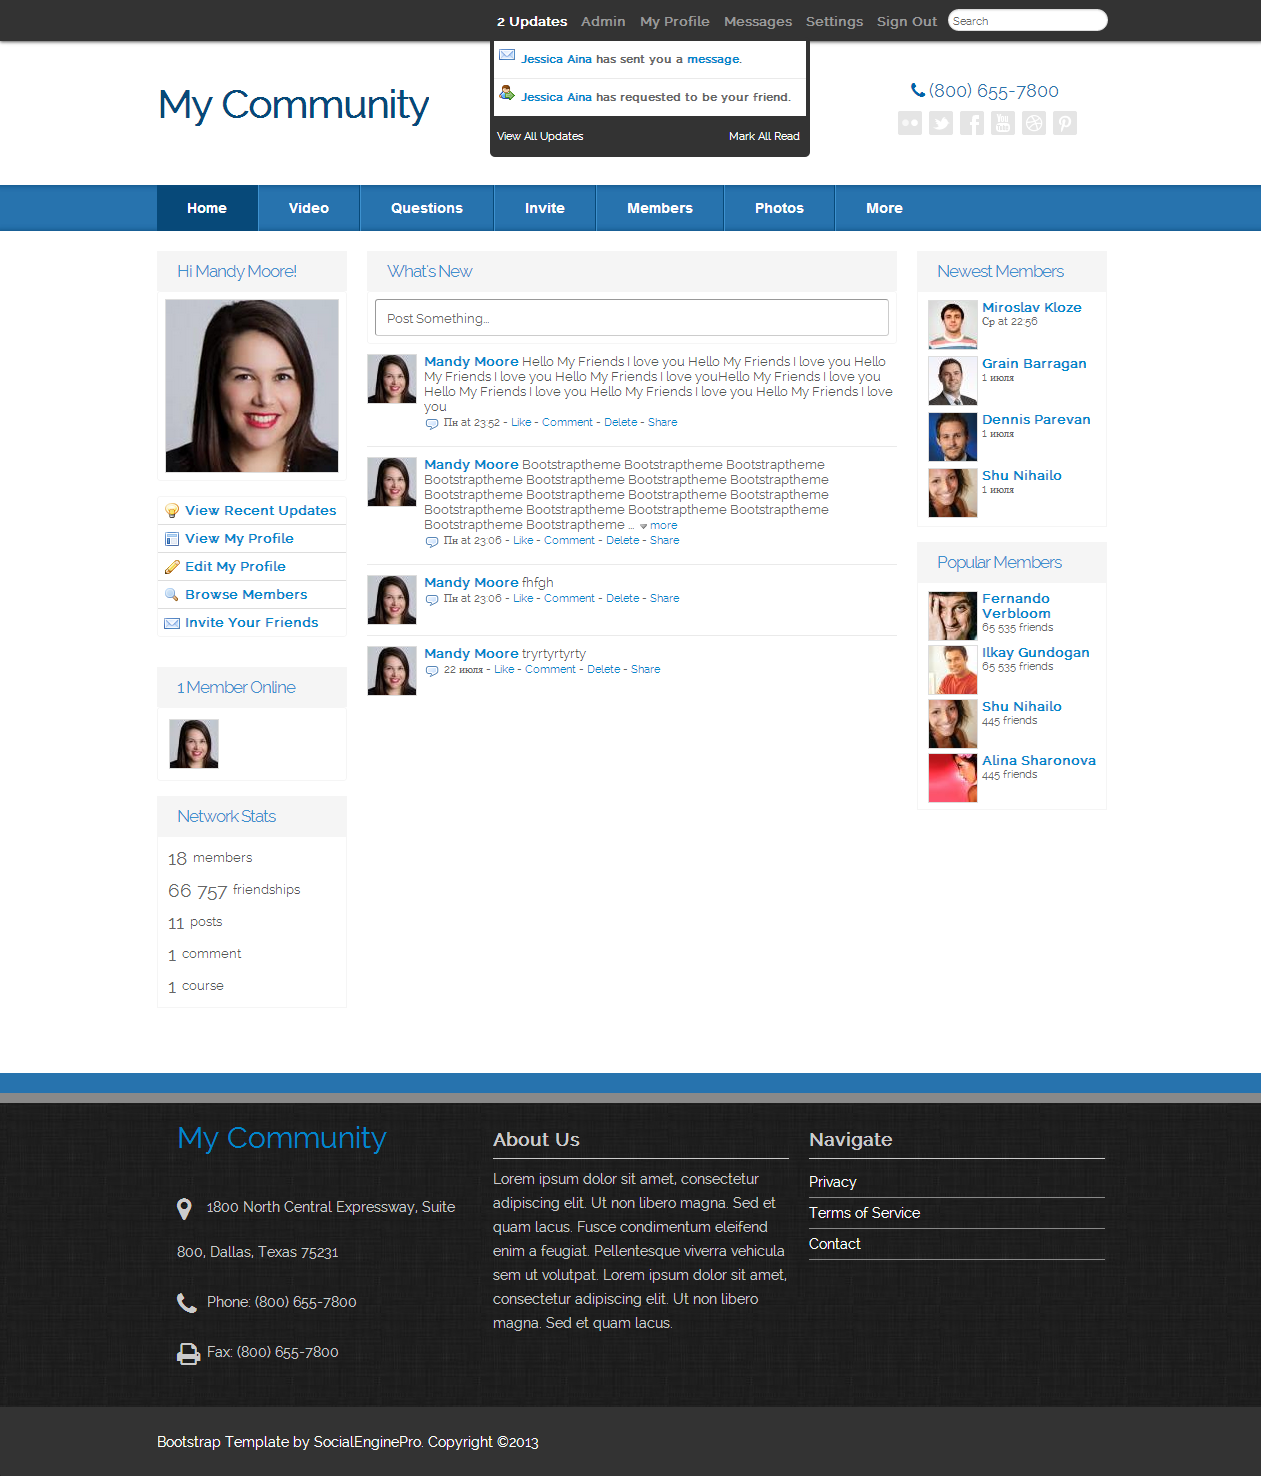 Bootstrap template 460 template for socialengine screenshots pronofoot35fo Image collections